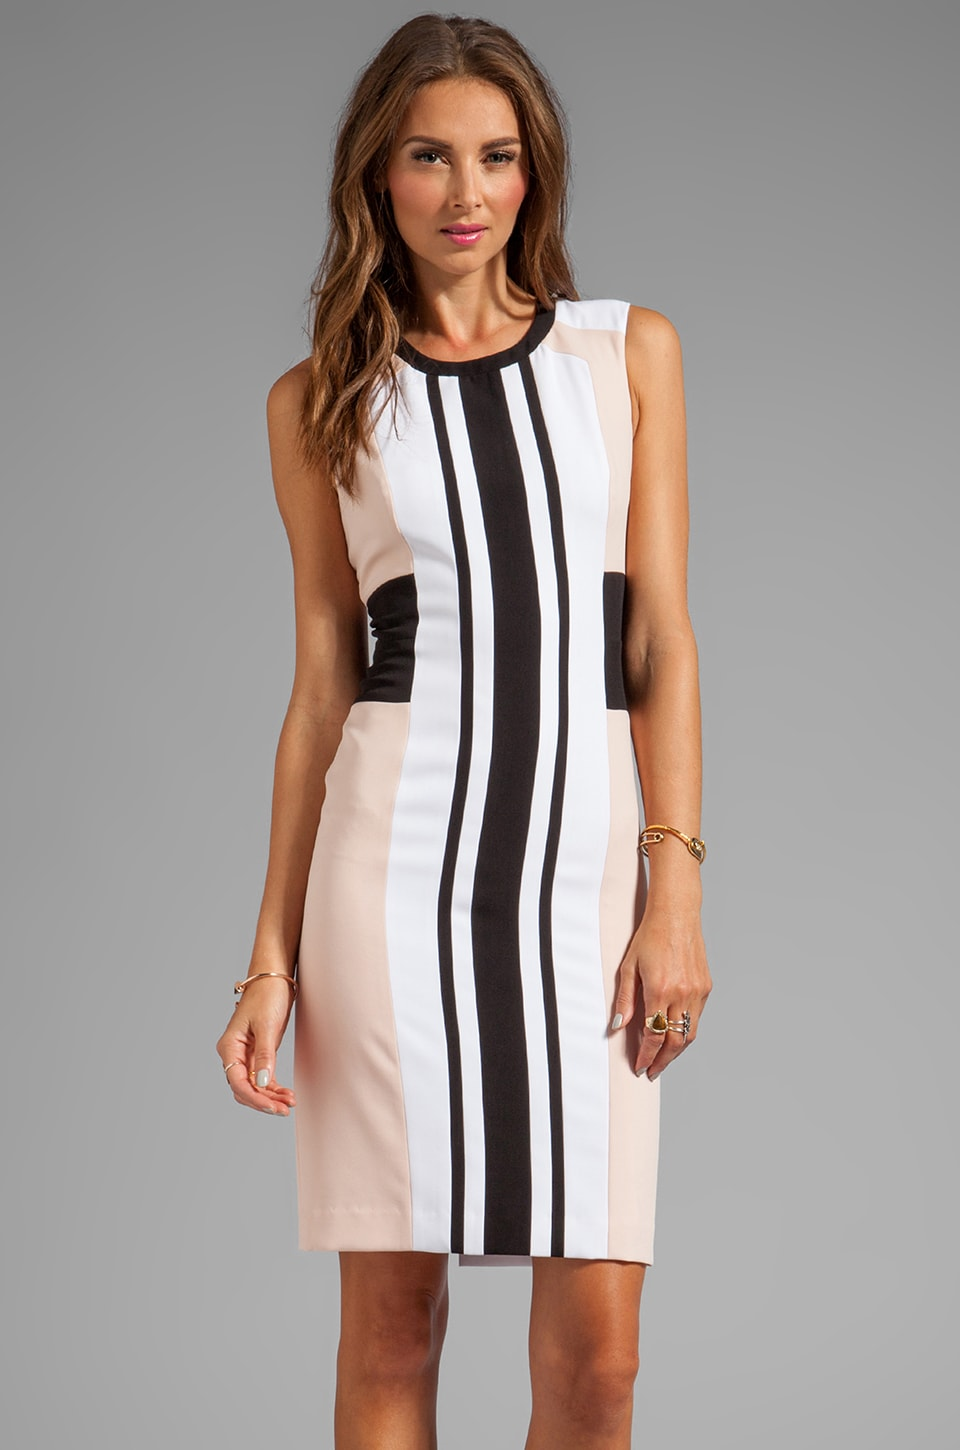 BCBGMAXAZRIA Sleeveless Stripe Front Dress in Bare Pink Combo